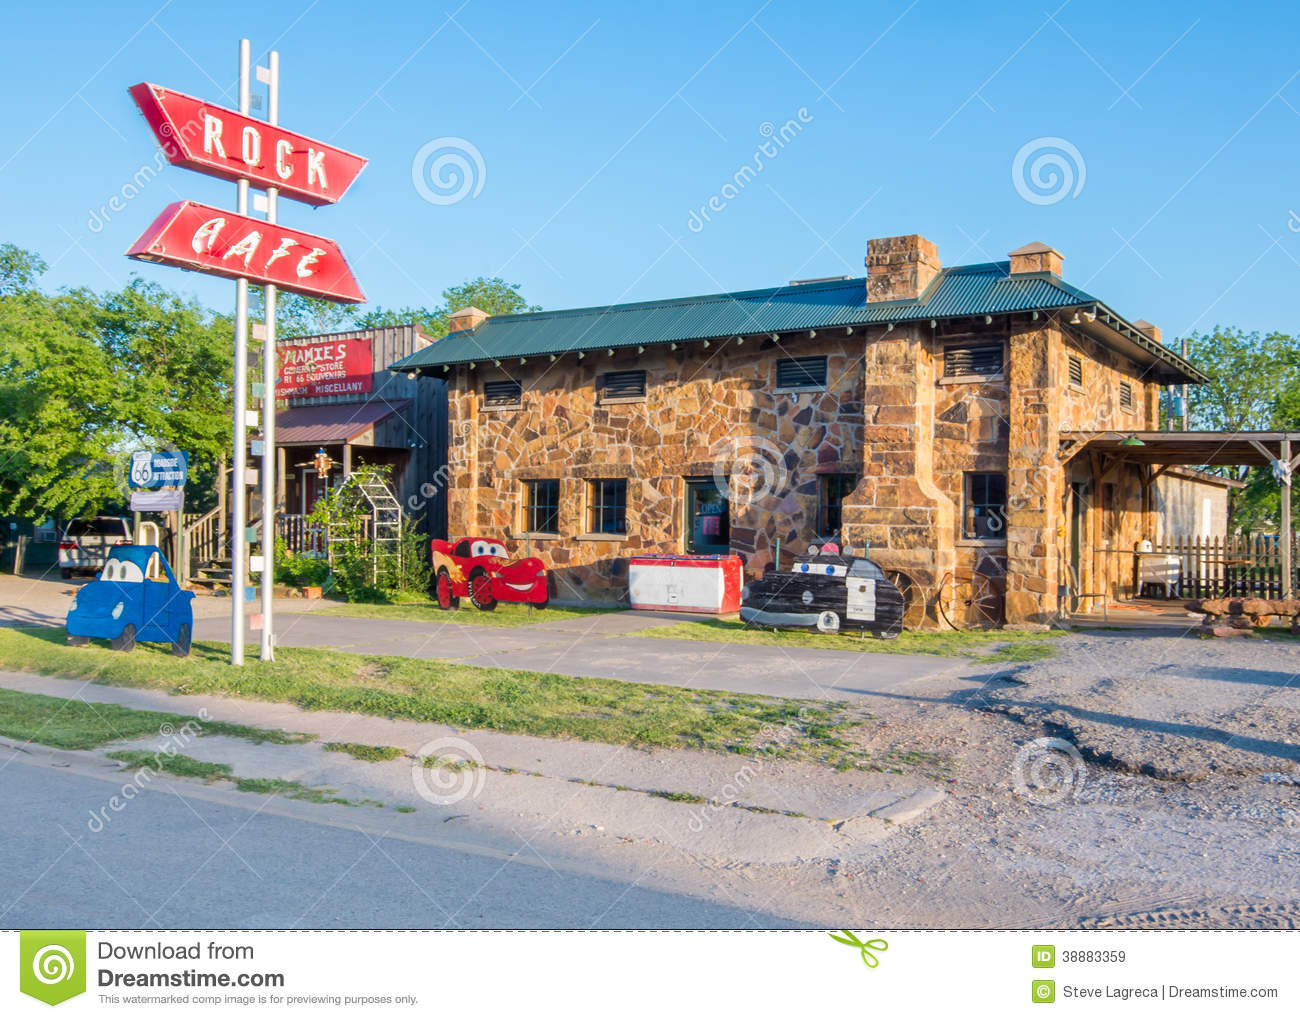 Southwest Home Plans Route 66 Rock Cafe Stroud Ok Editorial Stock Image